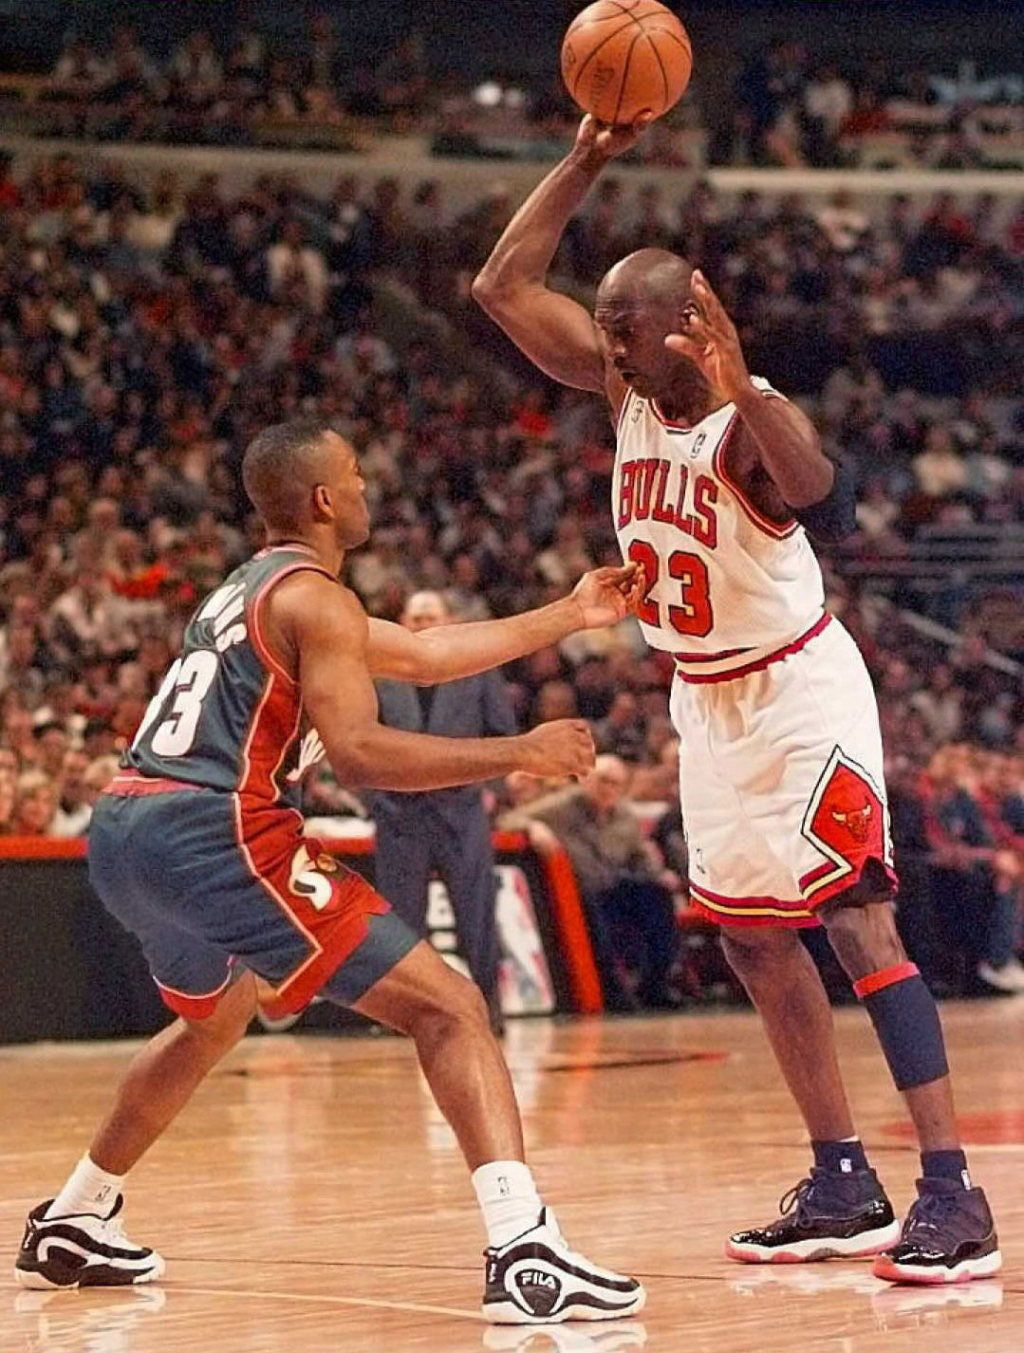 Photo Collection Of Michael Jordan Wearing Air Jordans On Court